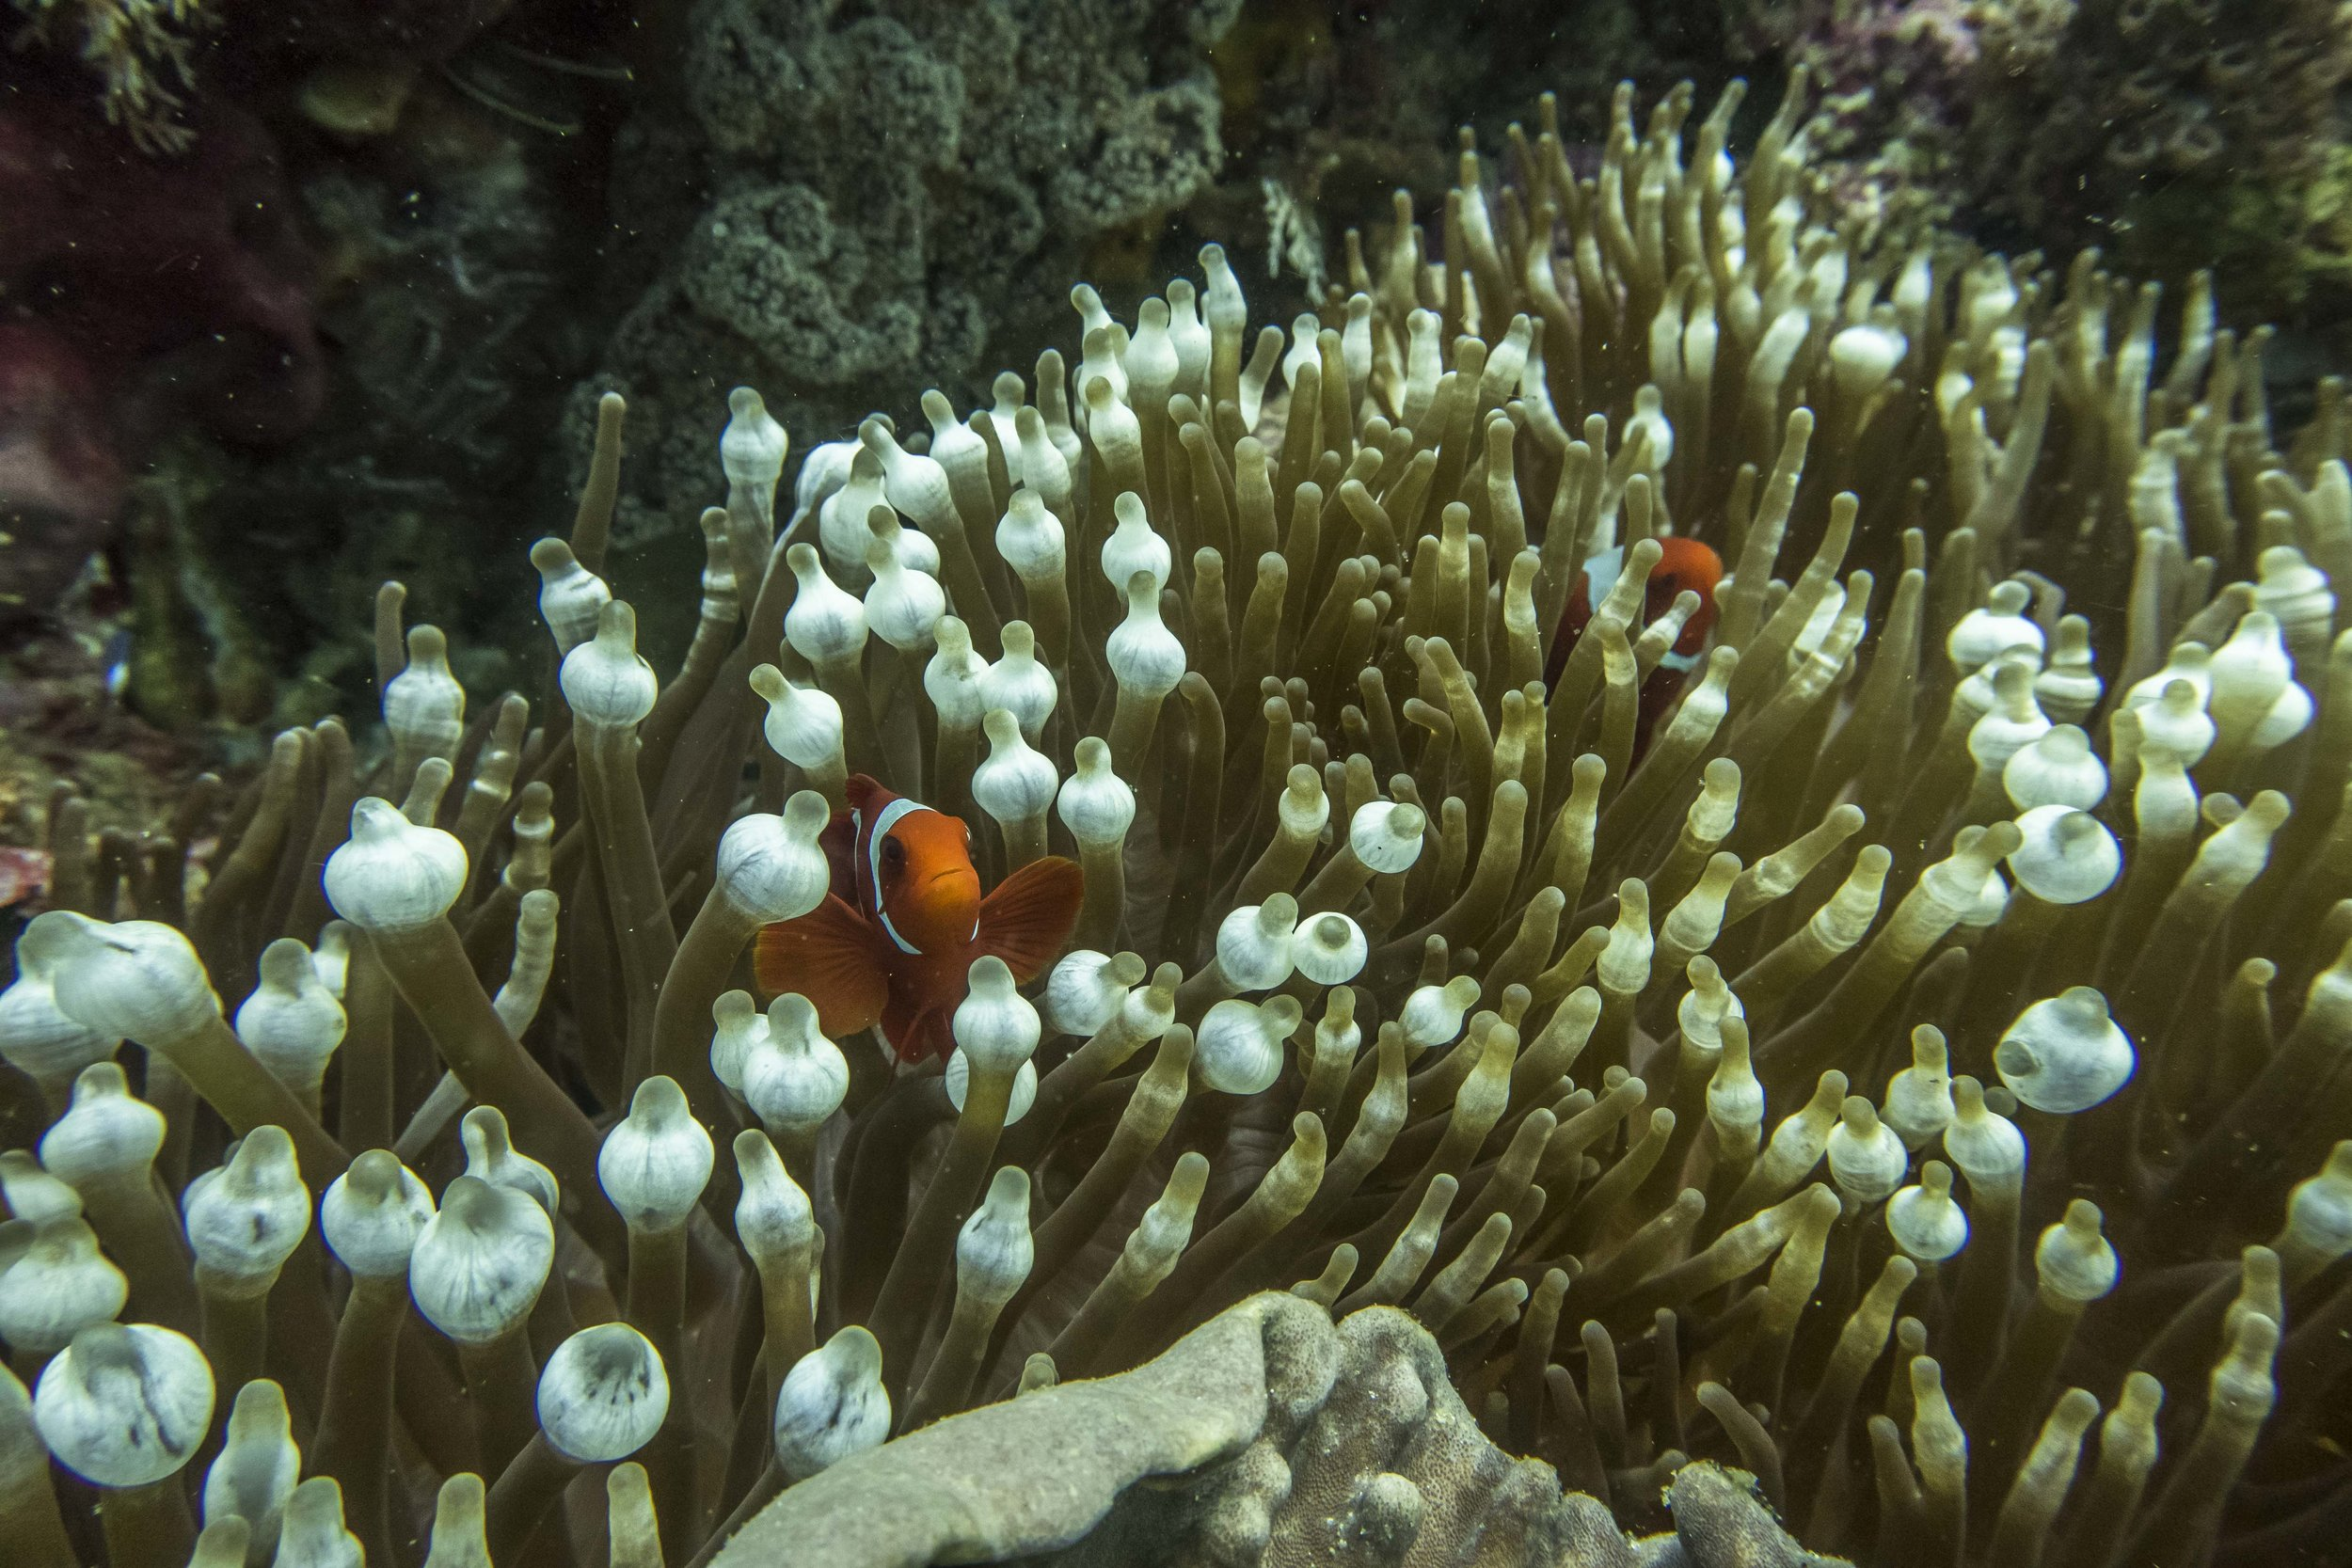 ocellaris clownfish (Amphiprion ocellaris) - Playing peek-a-boo with curious and territorial clownfish. We could fill an entire photo story just with pictures of clownfish in their beautiful sea anemones. Did you know that they are hermaphrodites and that males can become females as they mature?